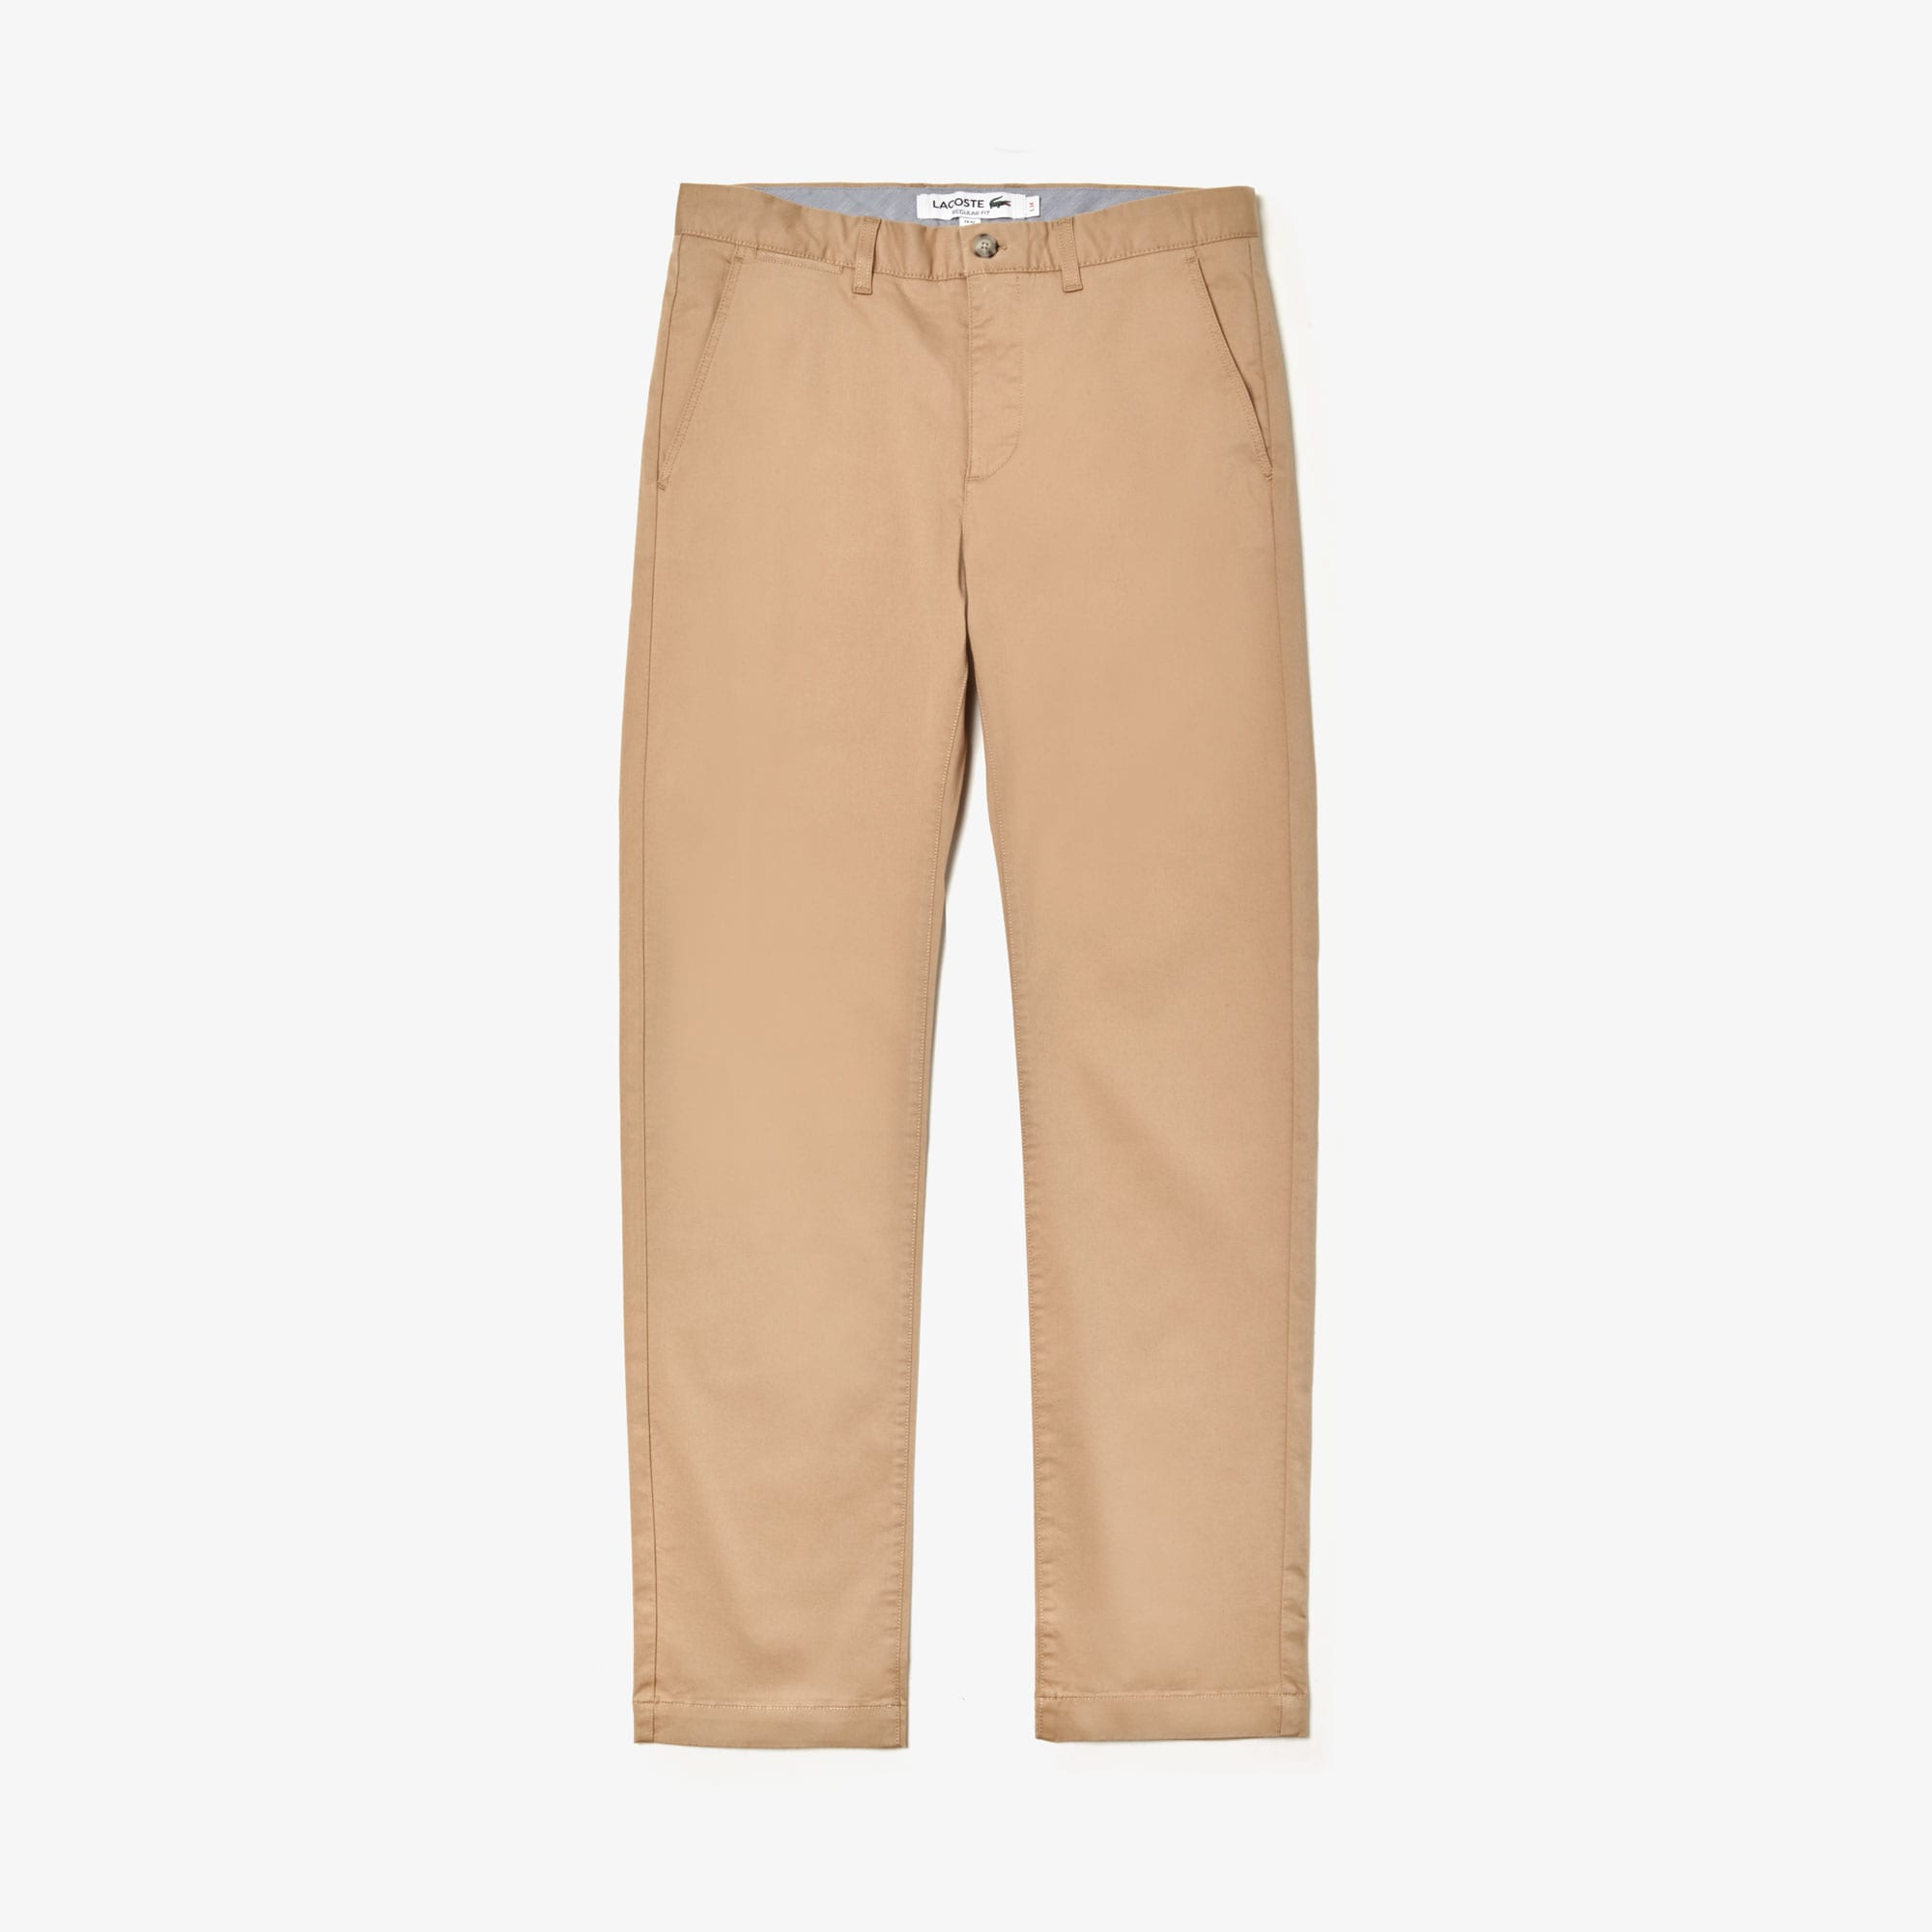 Lacoste Cottons Men's Regular Fit Stretch Cotton Chinos